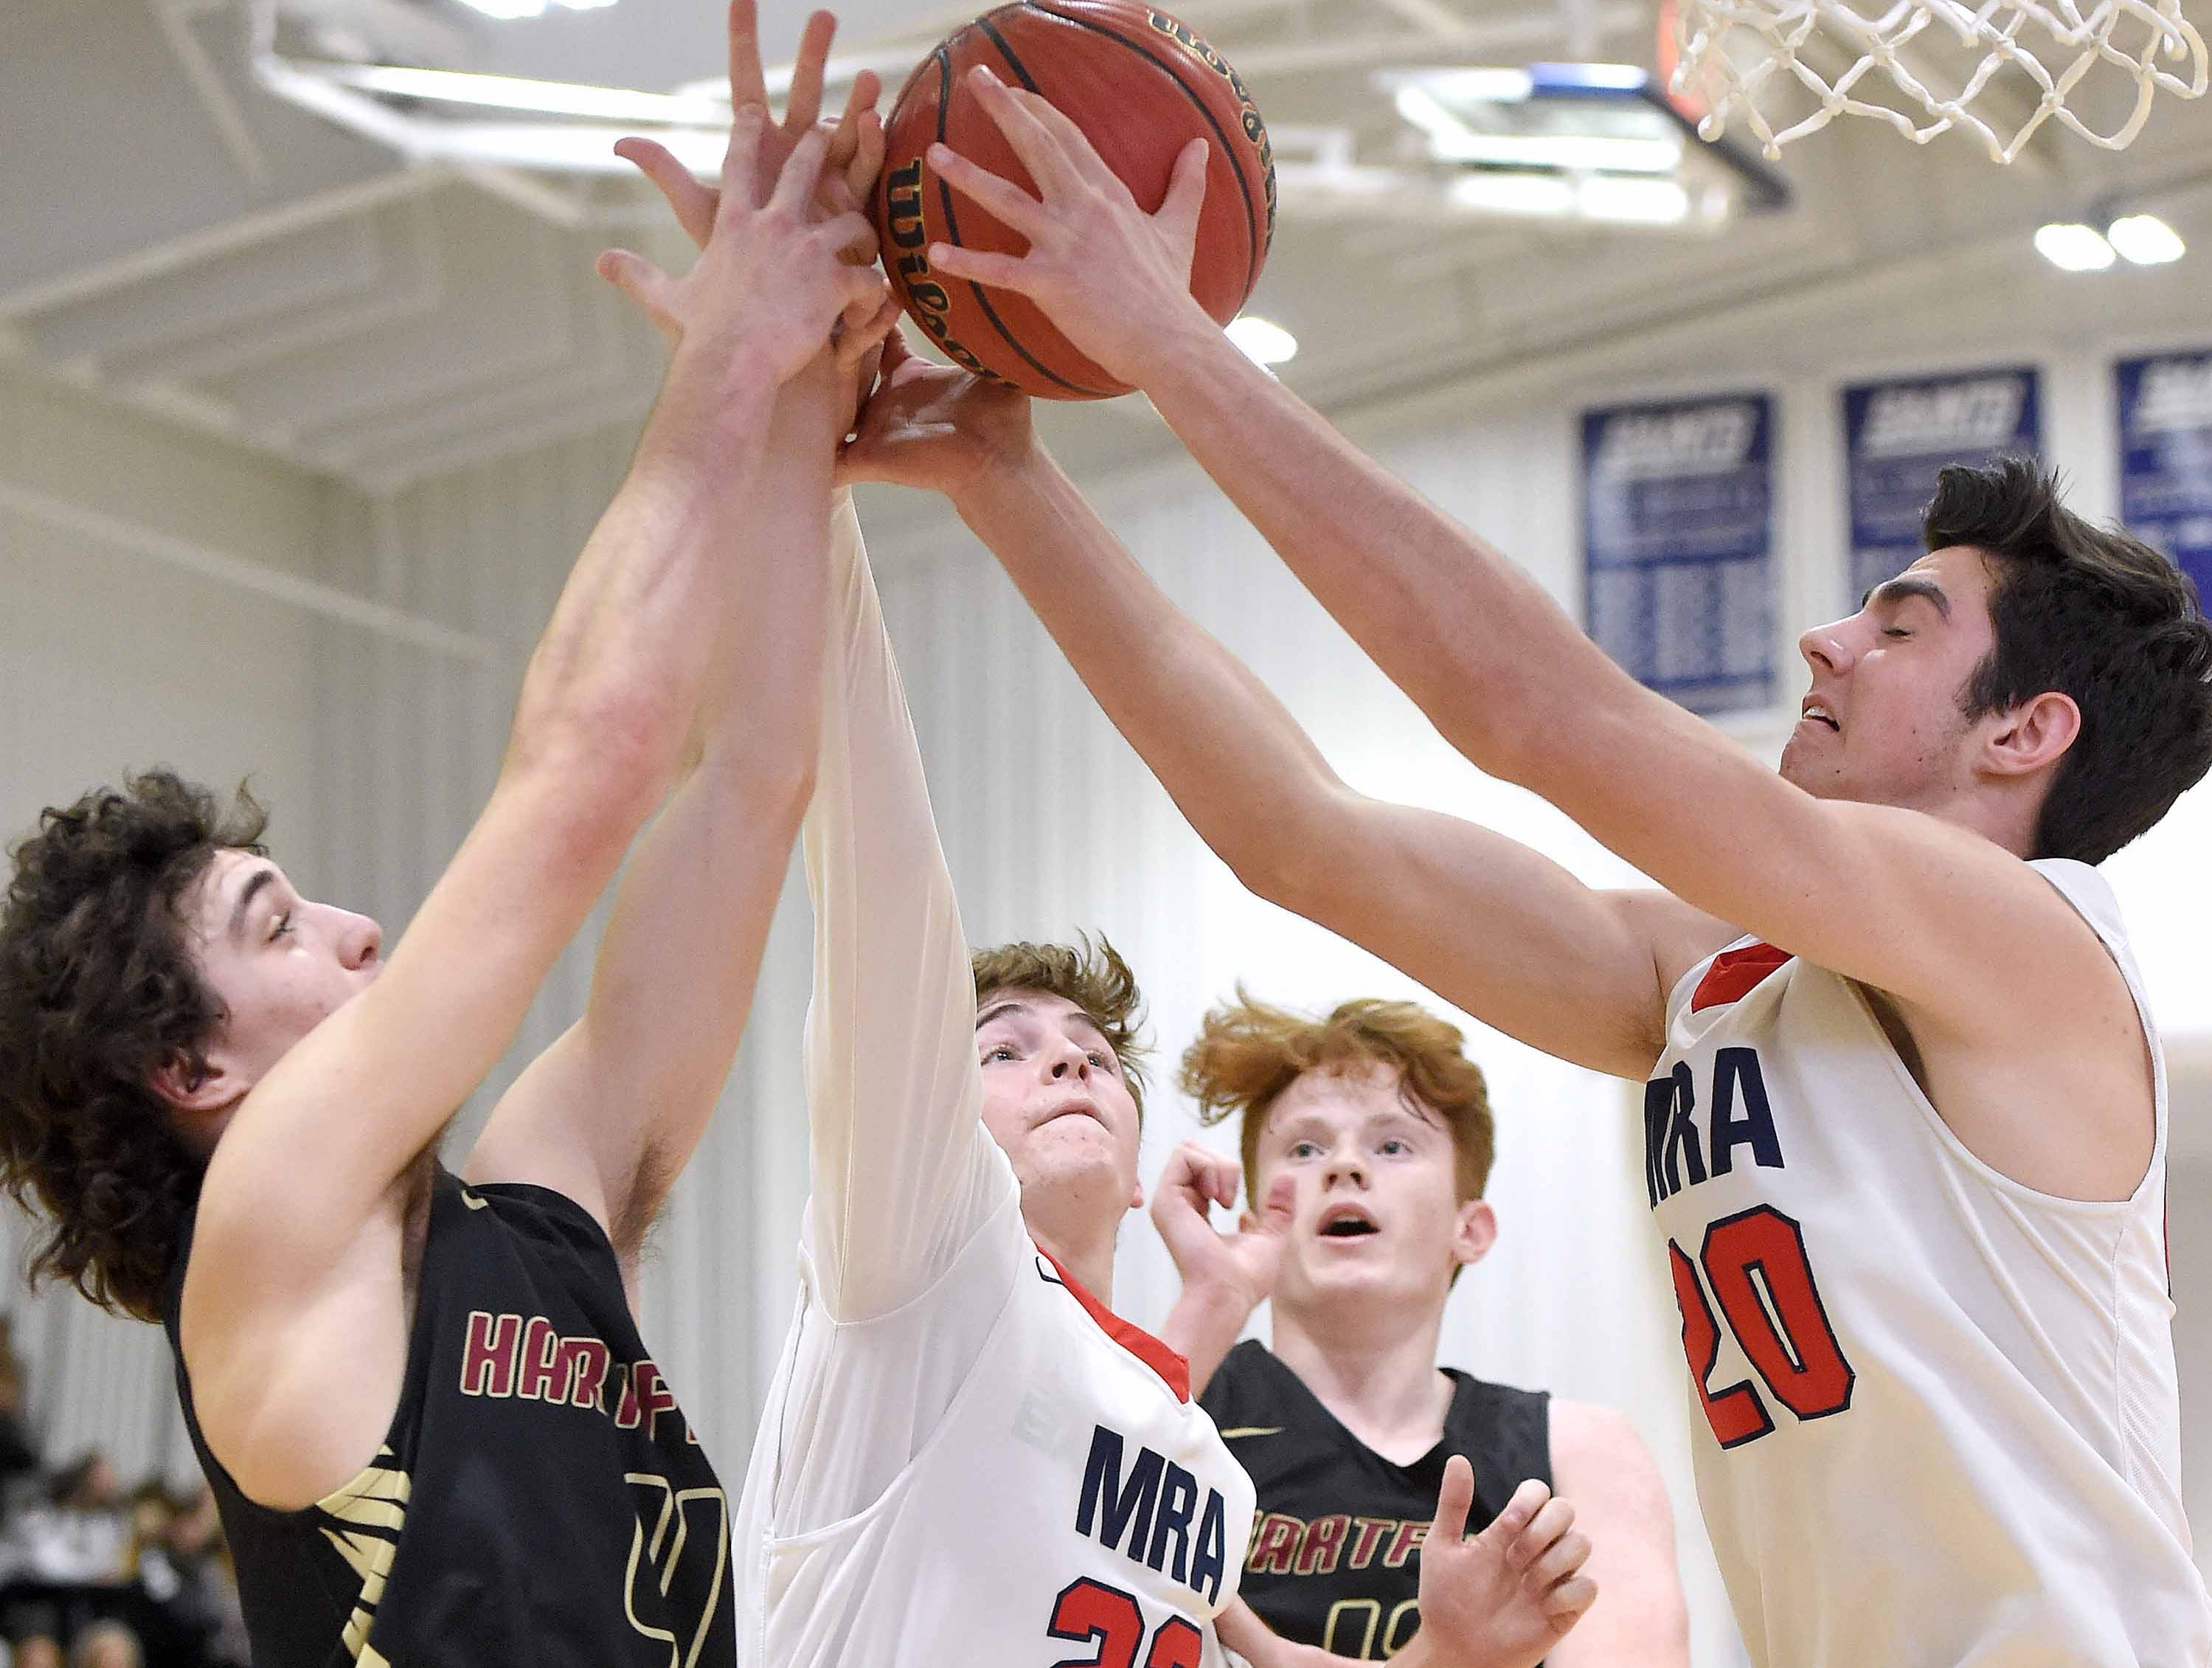 Hartfield's Will Sullivan (4) and Shane Wingate (second from right) fight for a rebound with MRA's Hamp Hudnall (22) and Russ Sceroler (20) on Monday, January 21, 2019, at the Rumble in the South high school basketball tournament at St. Andrew's Episcopal School in Ridgeland, Miss.